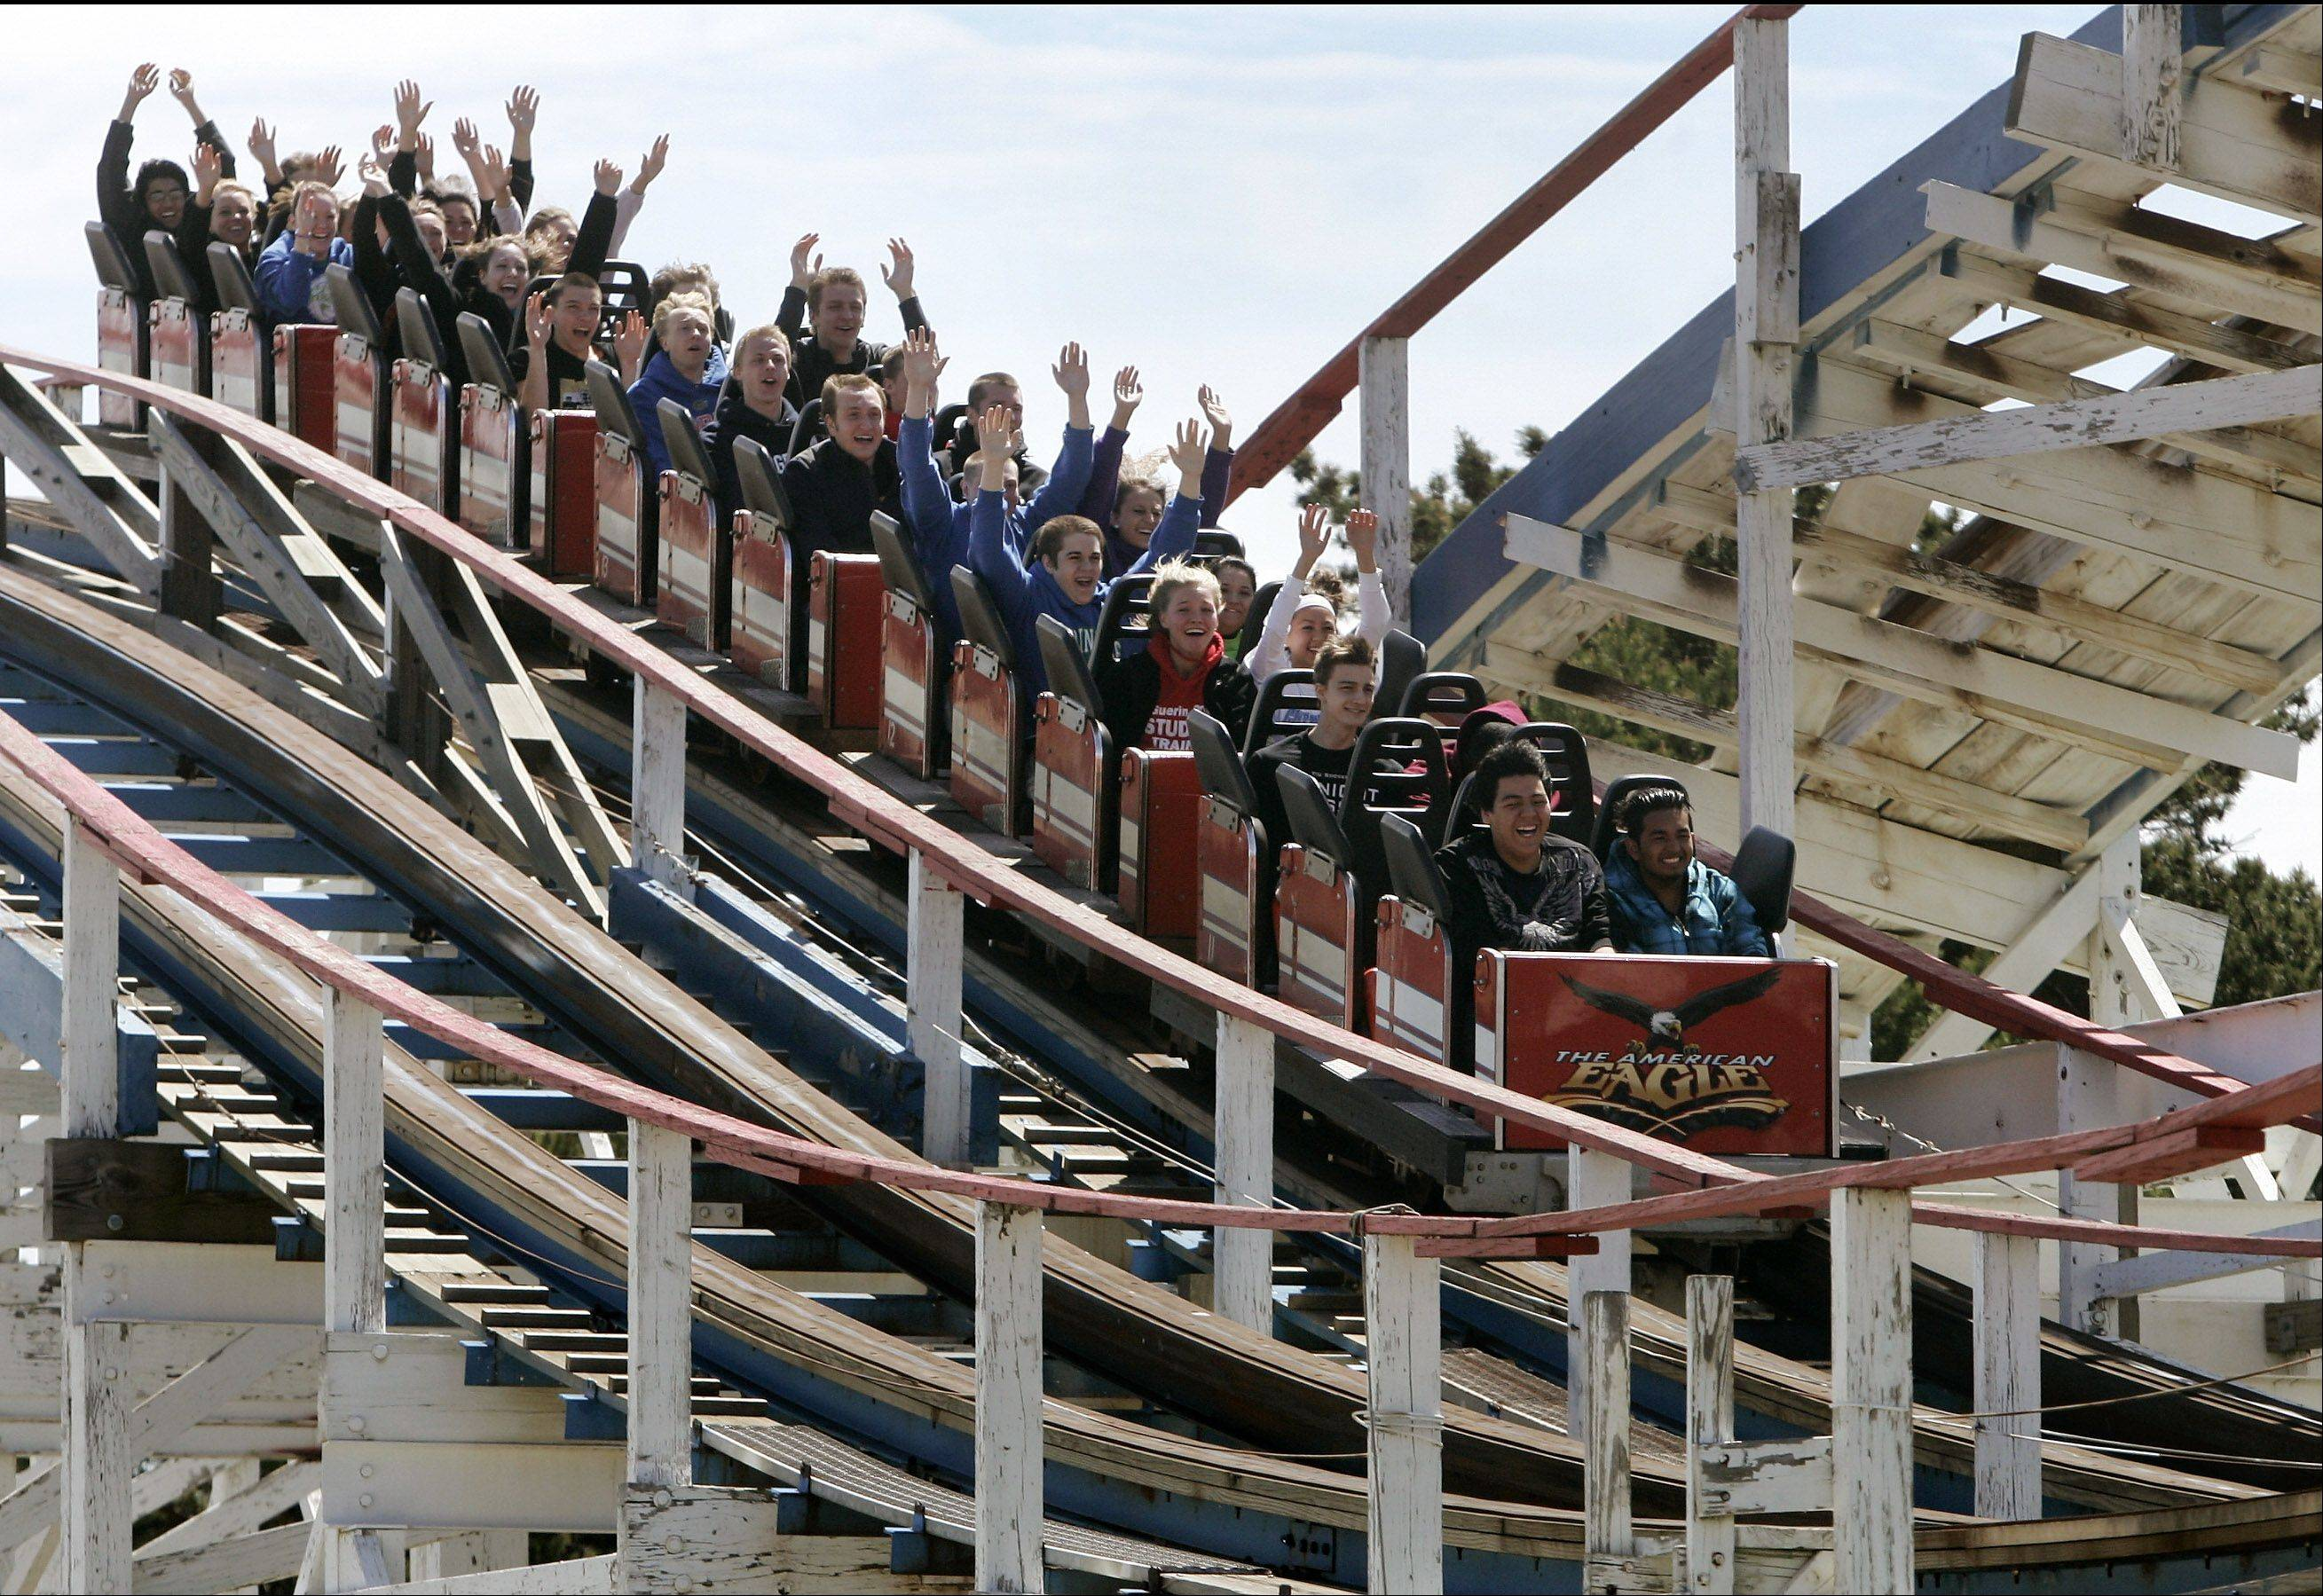 The American Eagle and Viper, not pictured, may receive competition on the wooden roller coaster front at Six Flags Great America in Gurnee. Village officials say the park has a plan for a new wooden coaster.